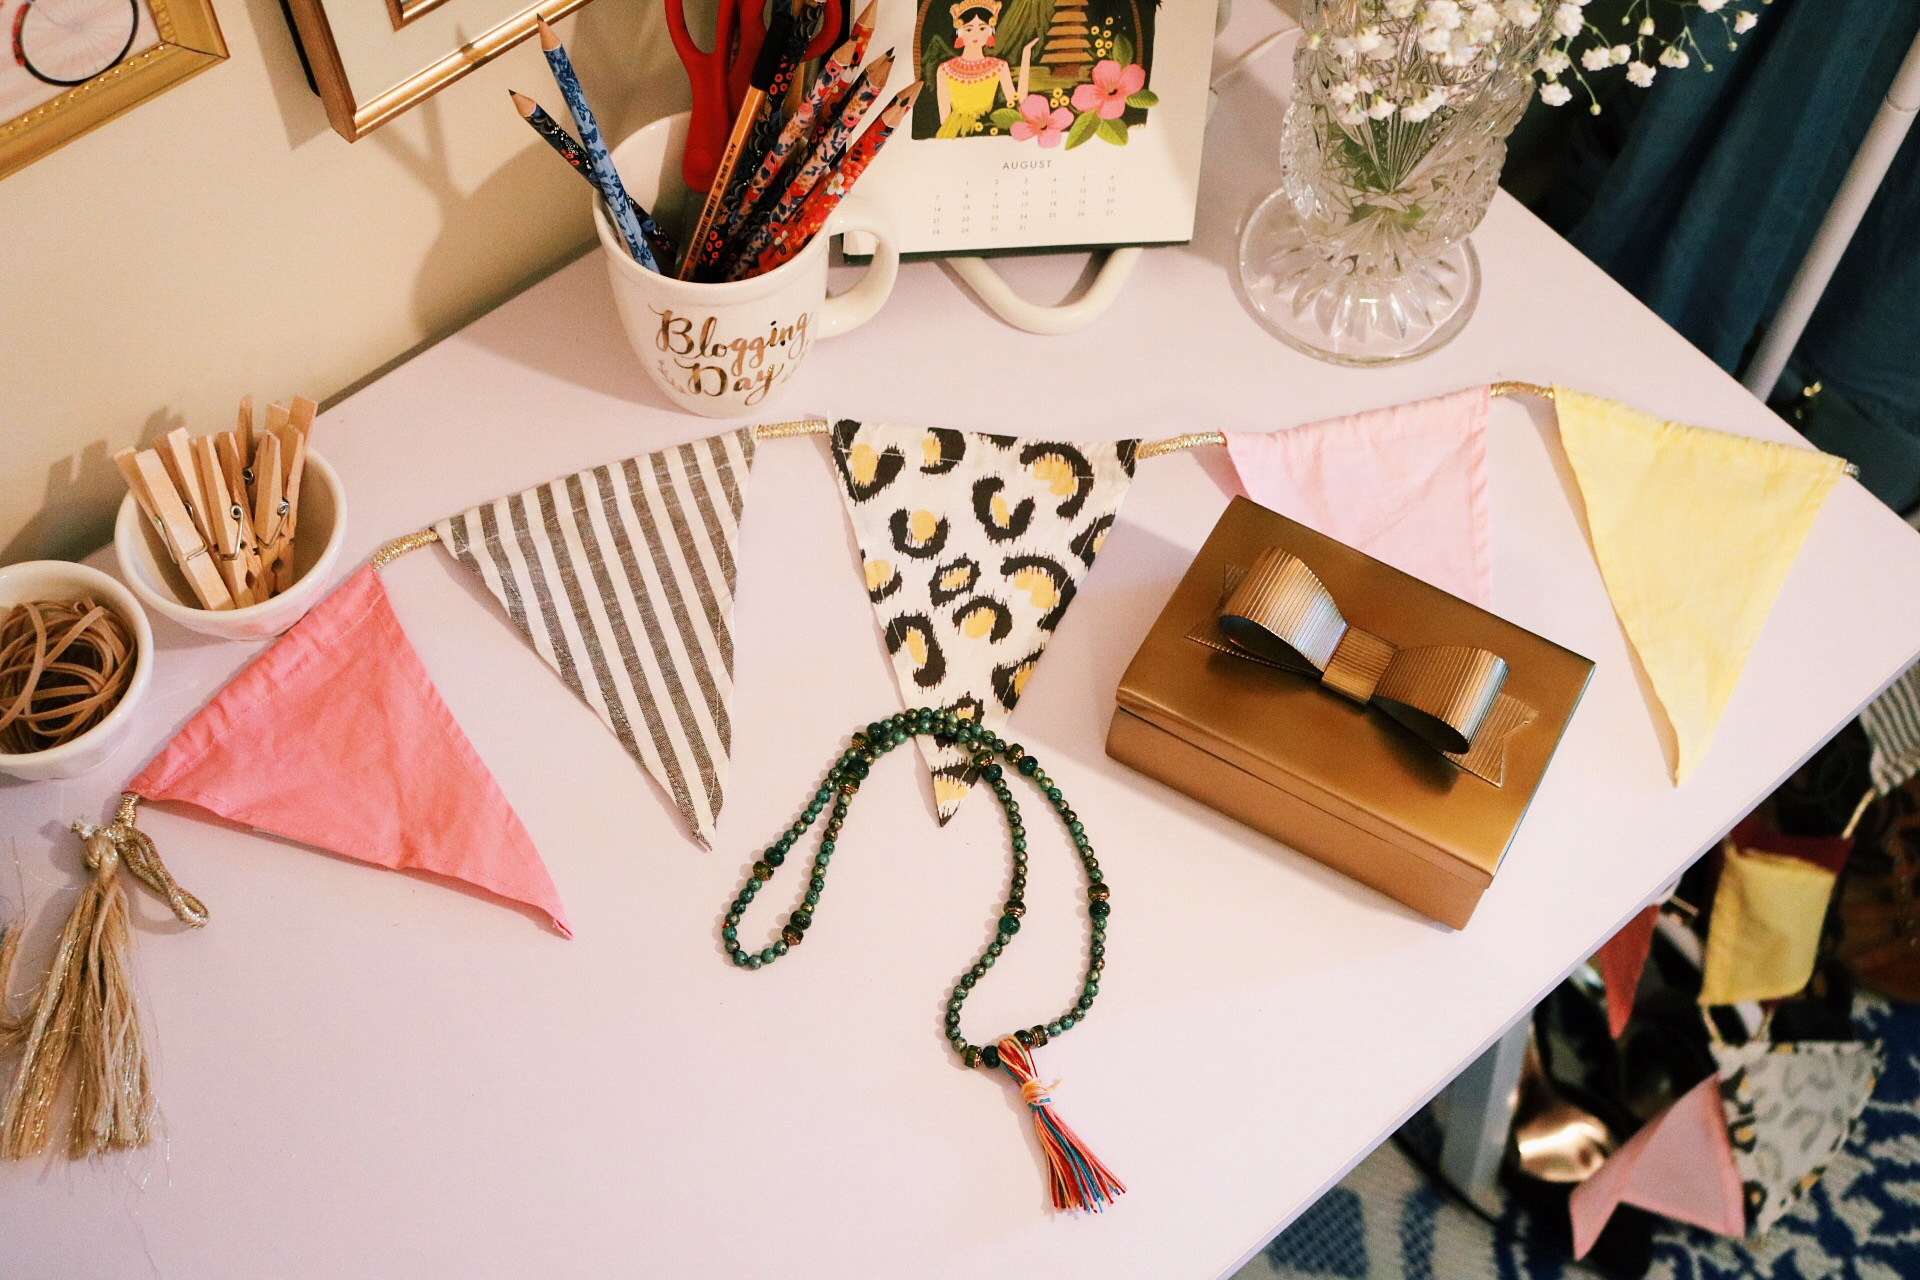 Gifting Creatively